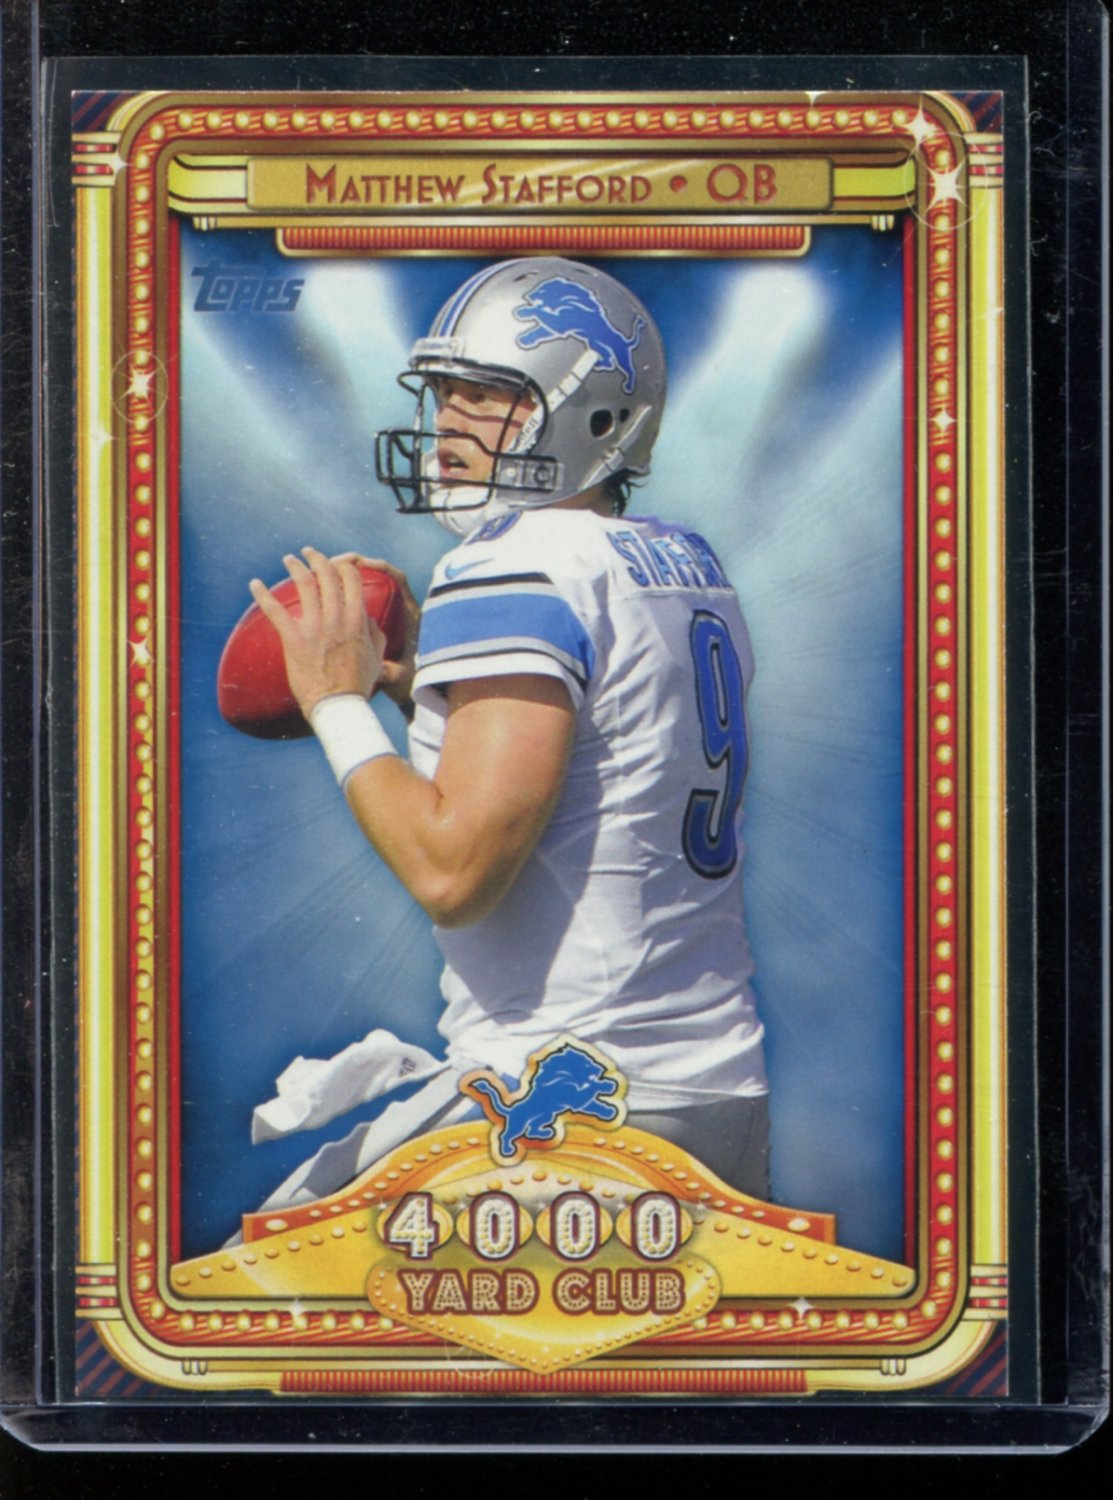 2013 Topps Football  #2  4000 Yard Club  Matthew Stafford